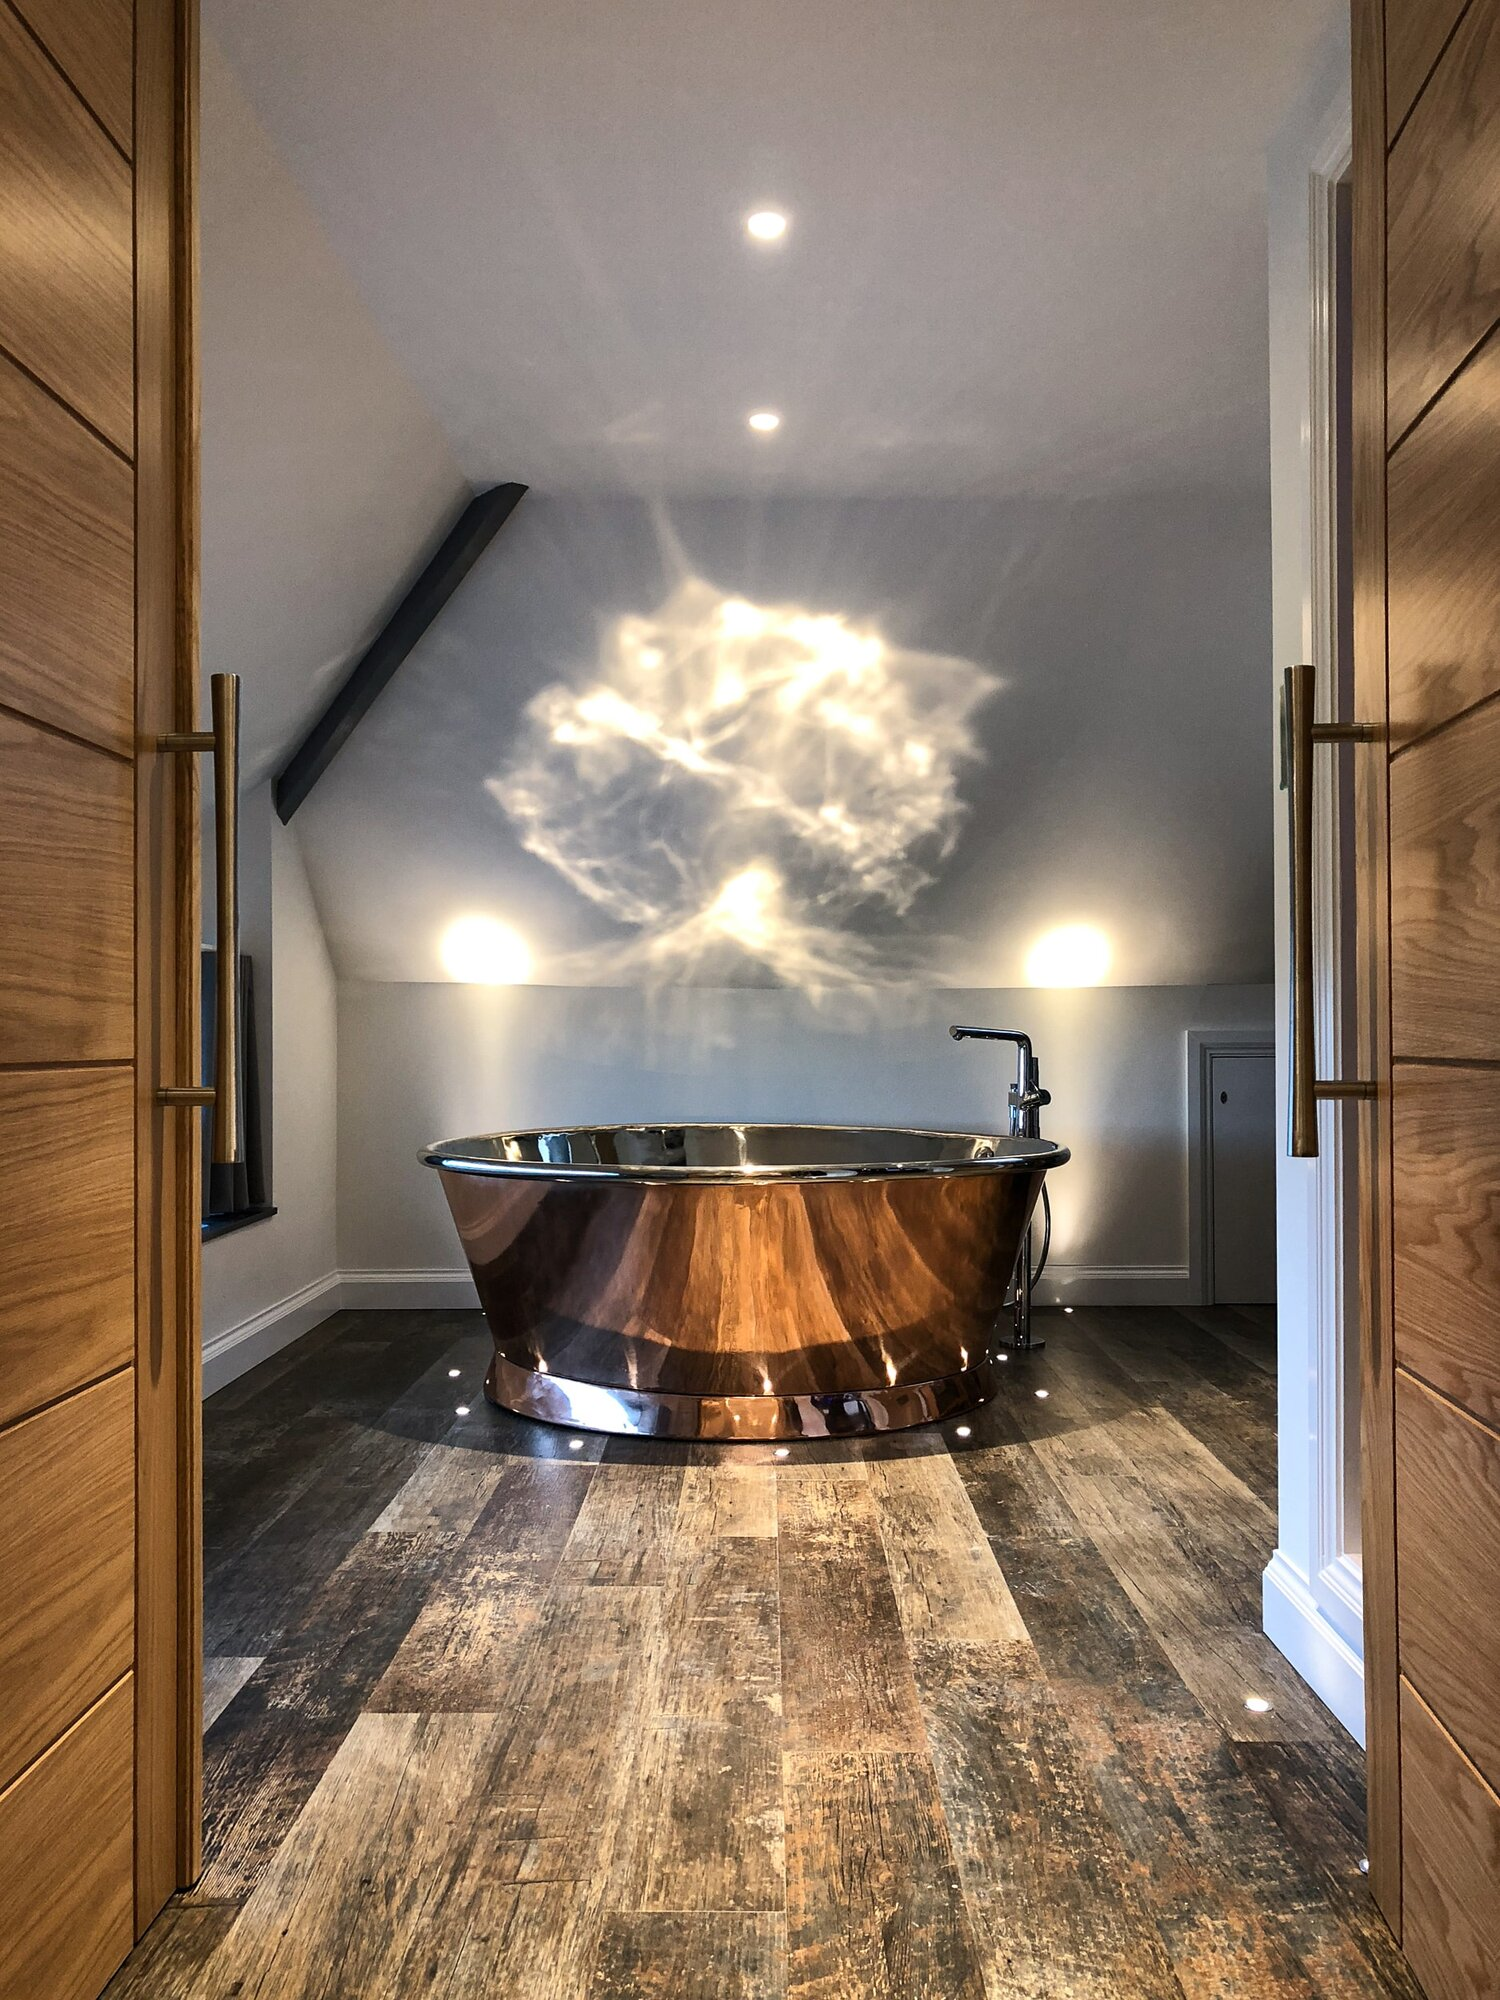 Copper air-spa freestanding bath tub with feature spot lighting